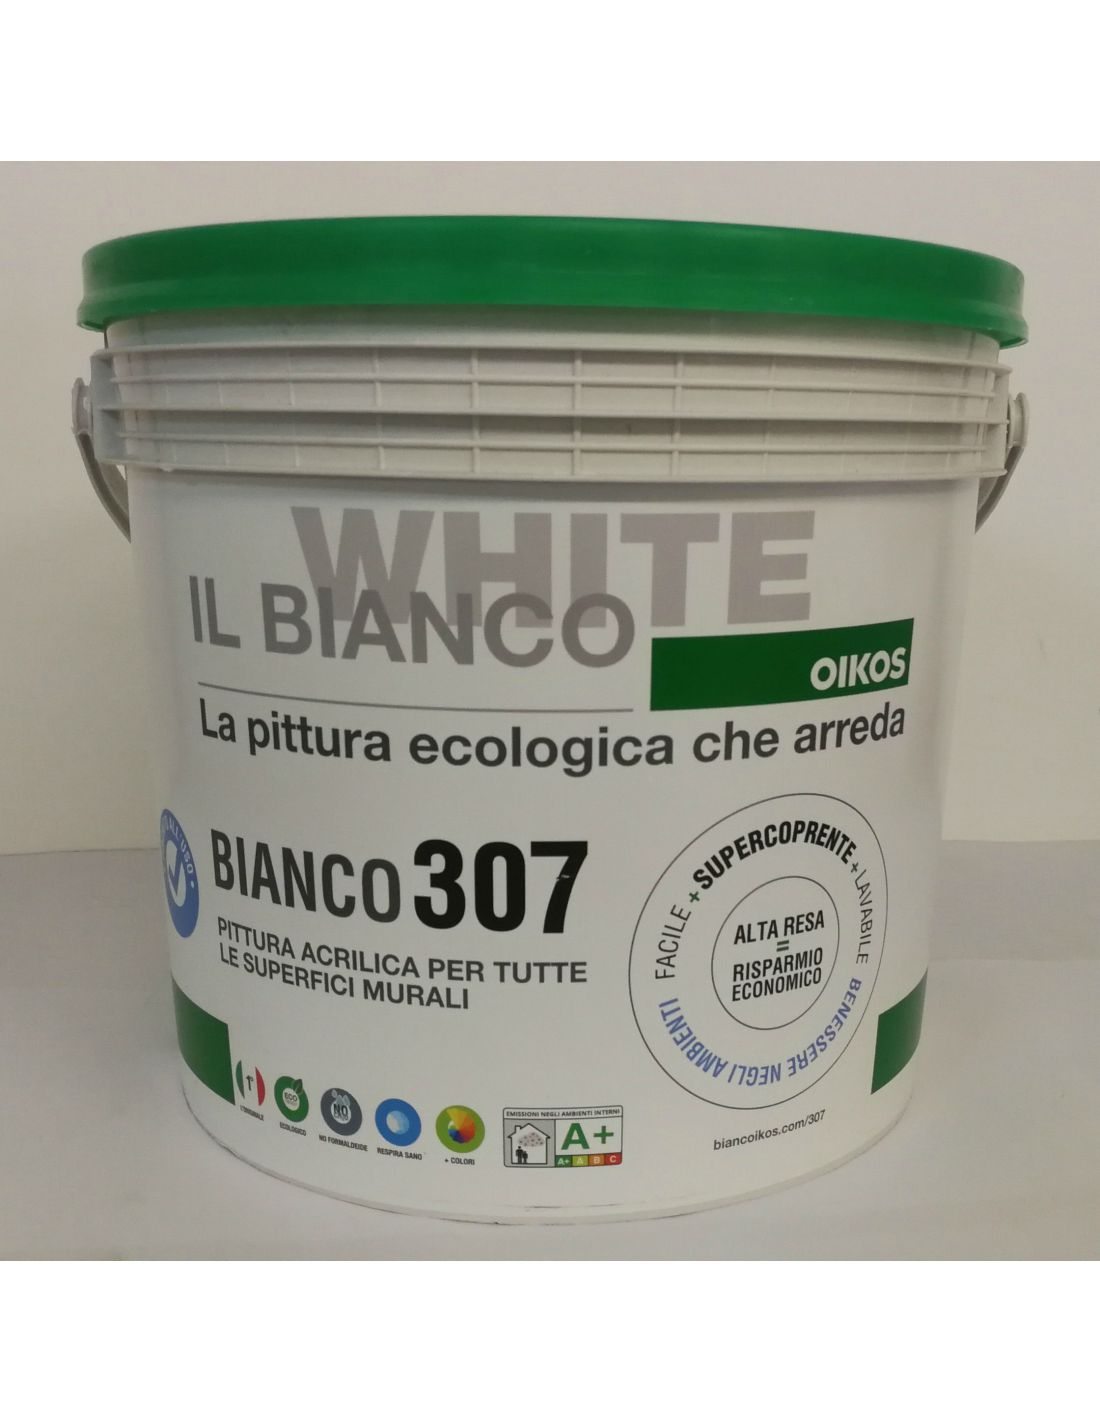 Pittura Lavabile Vellutata Bianco 307 By Oikos Compra Online Su Esaem It Assistenza Qualificata